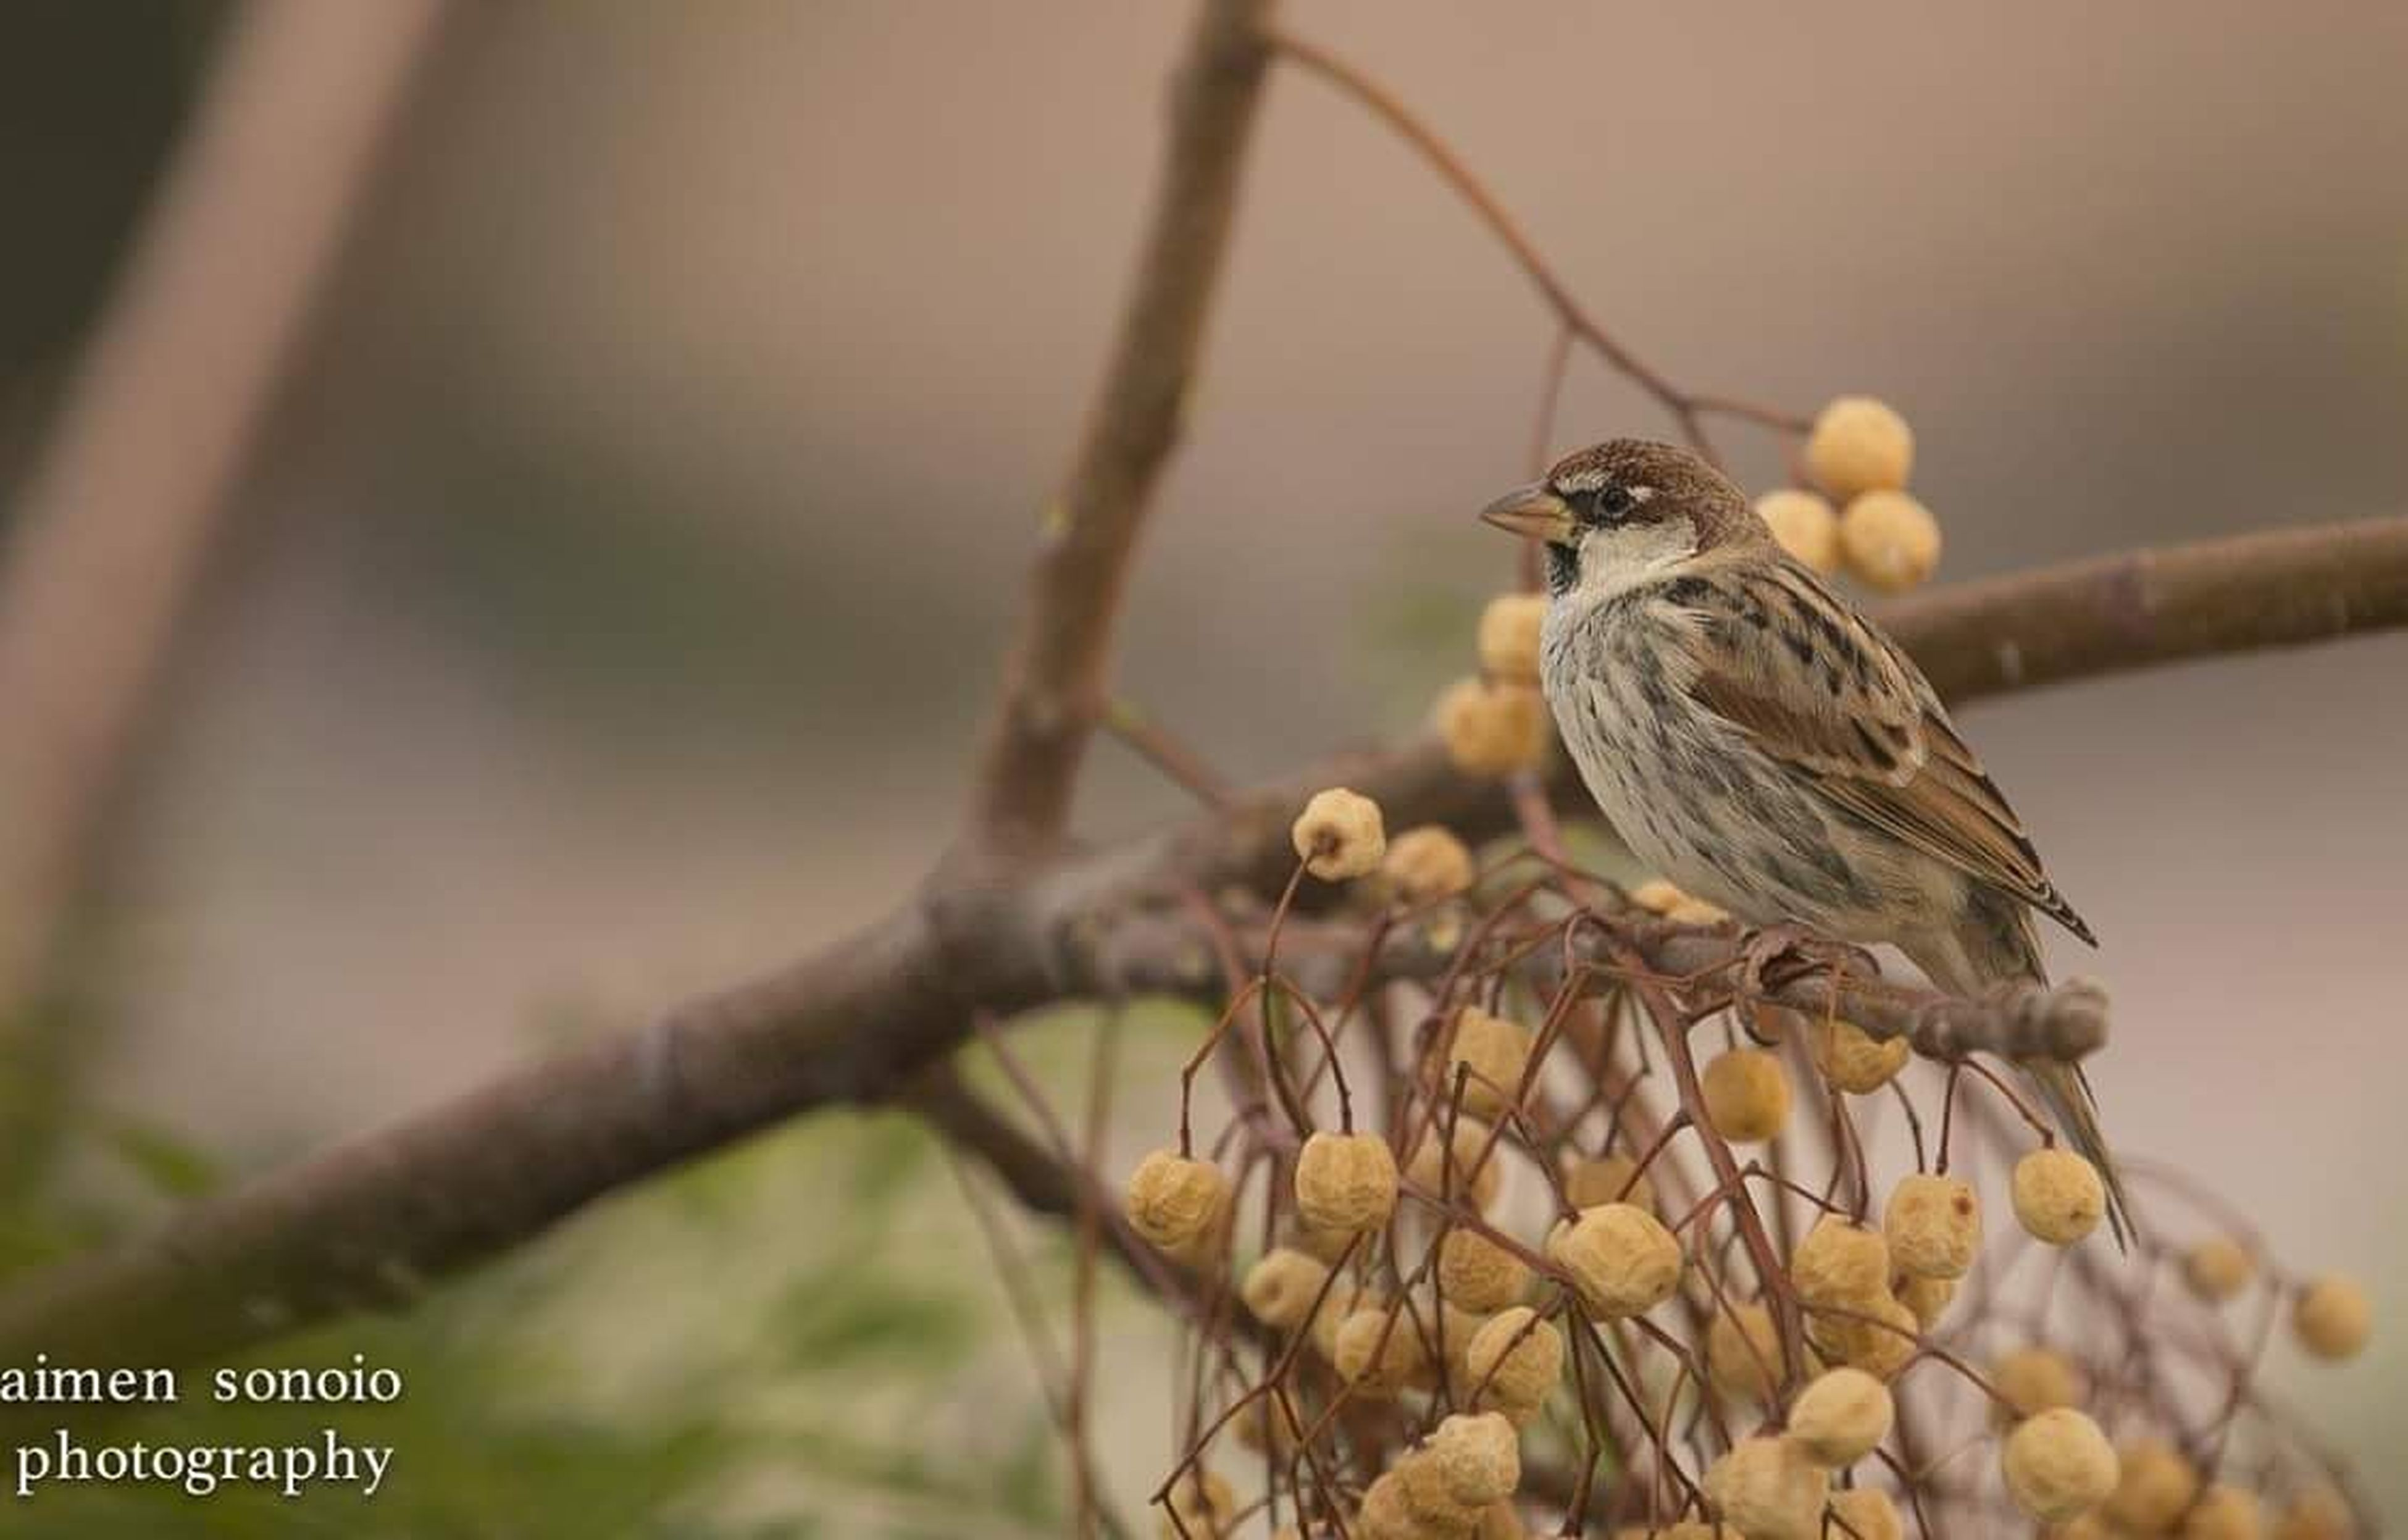 animal wildlife, animals in the wild, bird, nature, animal themes, yellow, perching, beauty in nature, branch, tree, songbird, outdoors, close-up, food, no people, insect, day, living organism